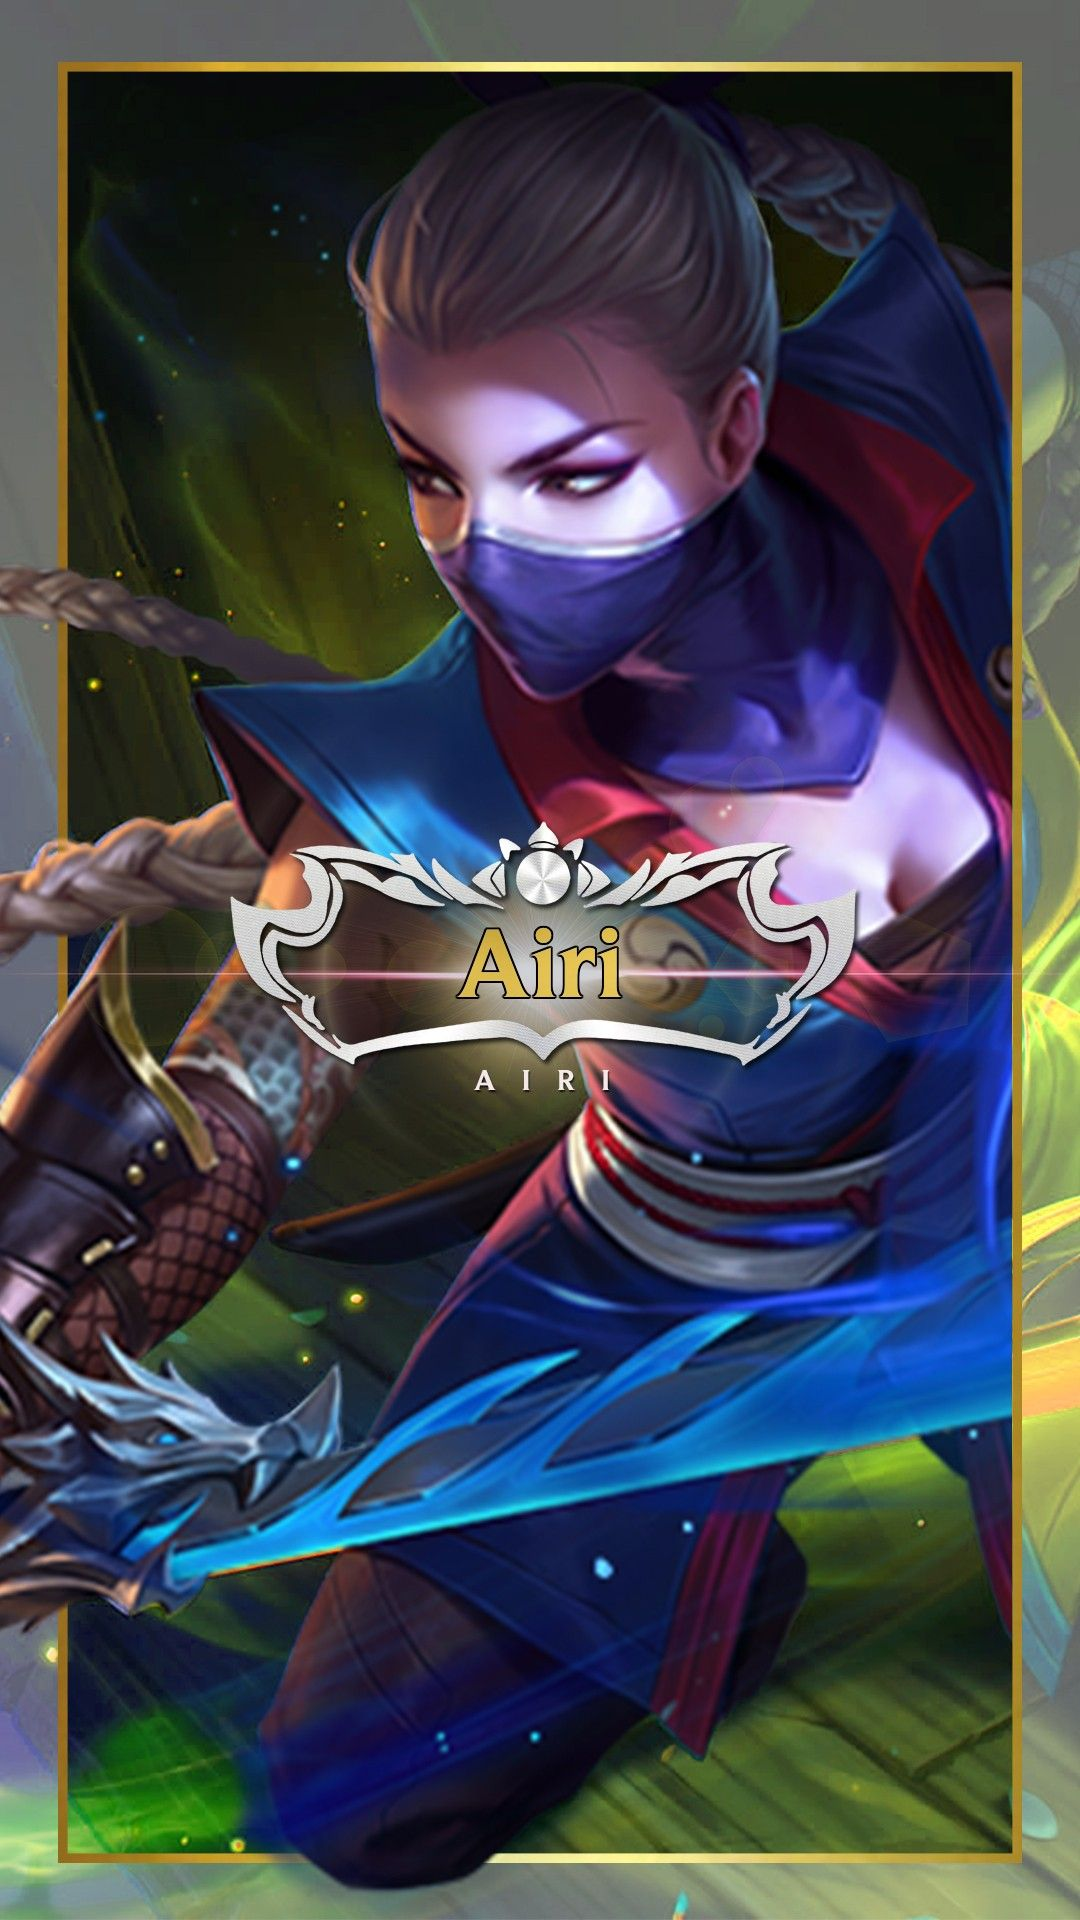 Aov Phone Wallpaper Hd For Android Ios Iphone Smartphone K Check More At Https